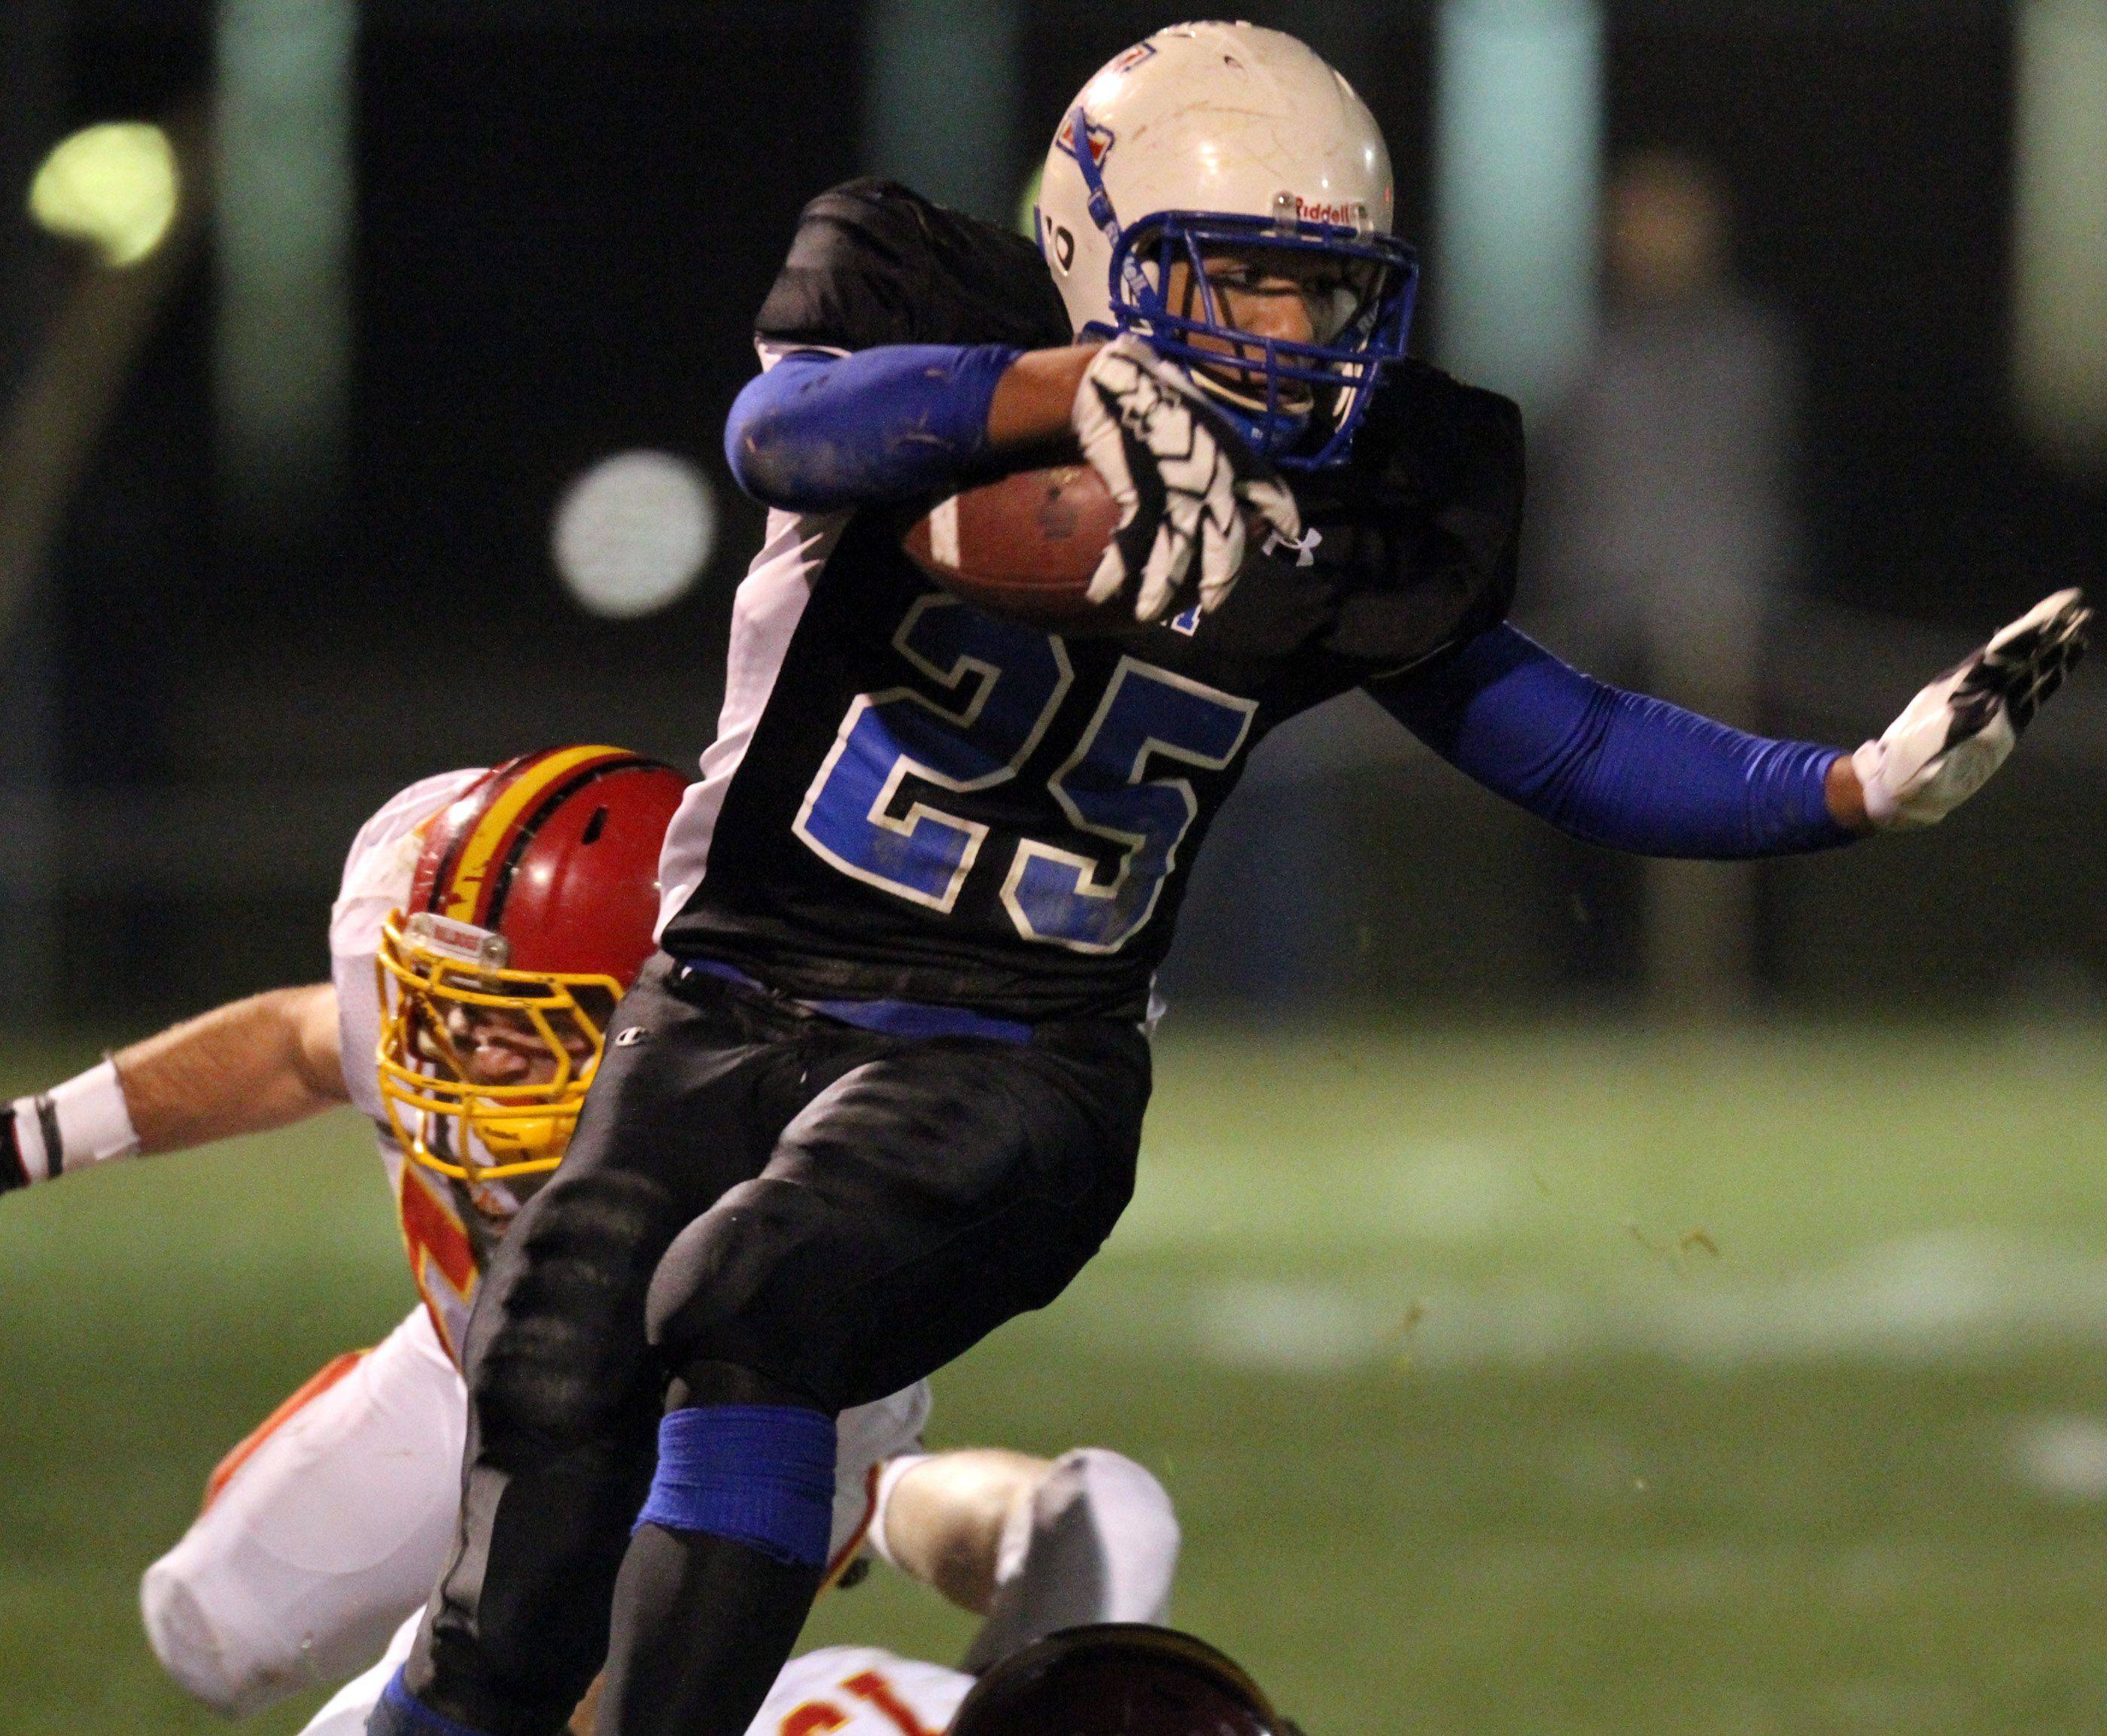 Lakes running back Direll Clark clears two Batavia defenders during the first half at Lakes on Saturday, November 12th.